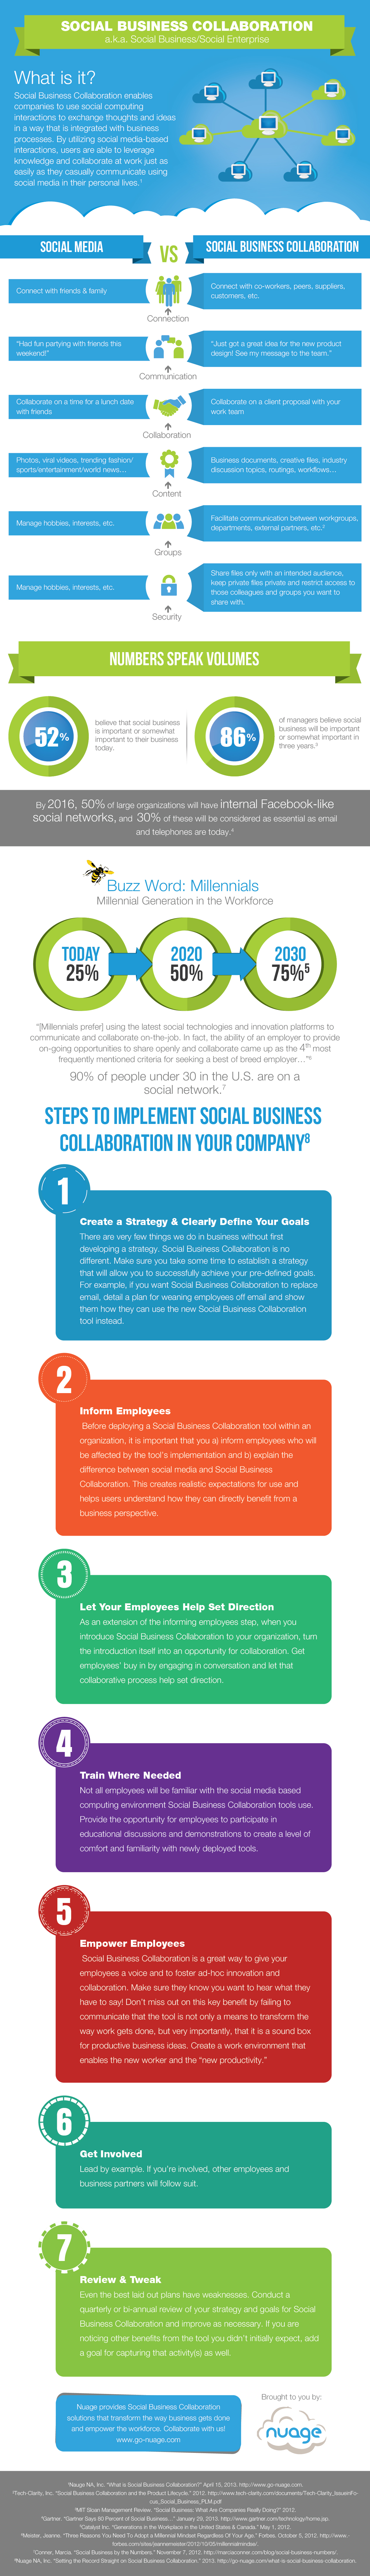 Setting The Record Straight On Social Business Collaboration